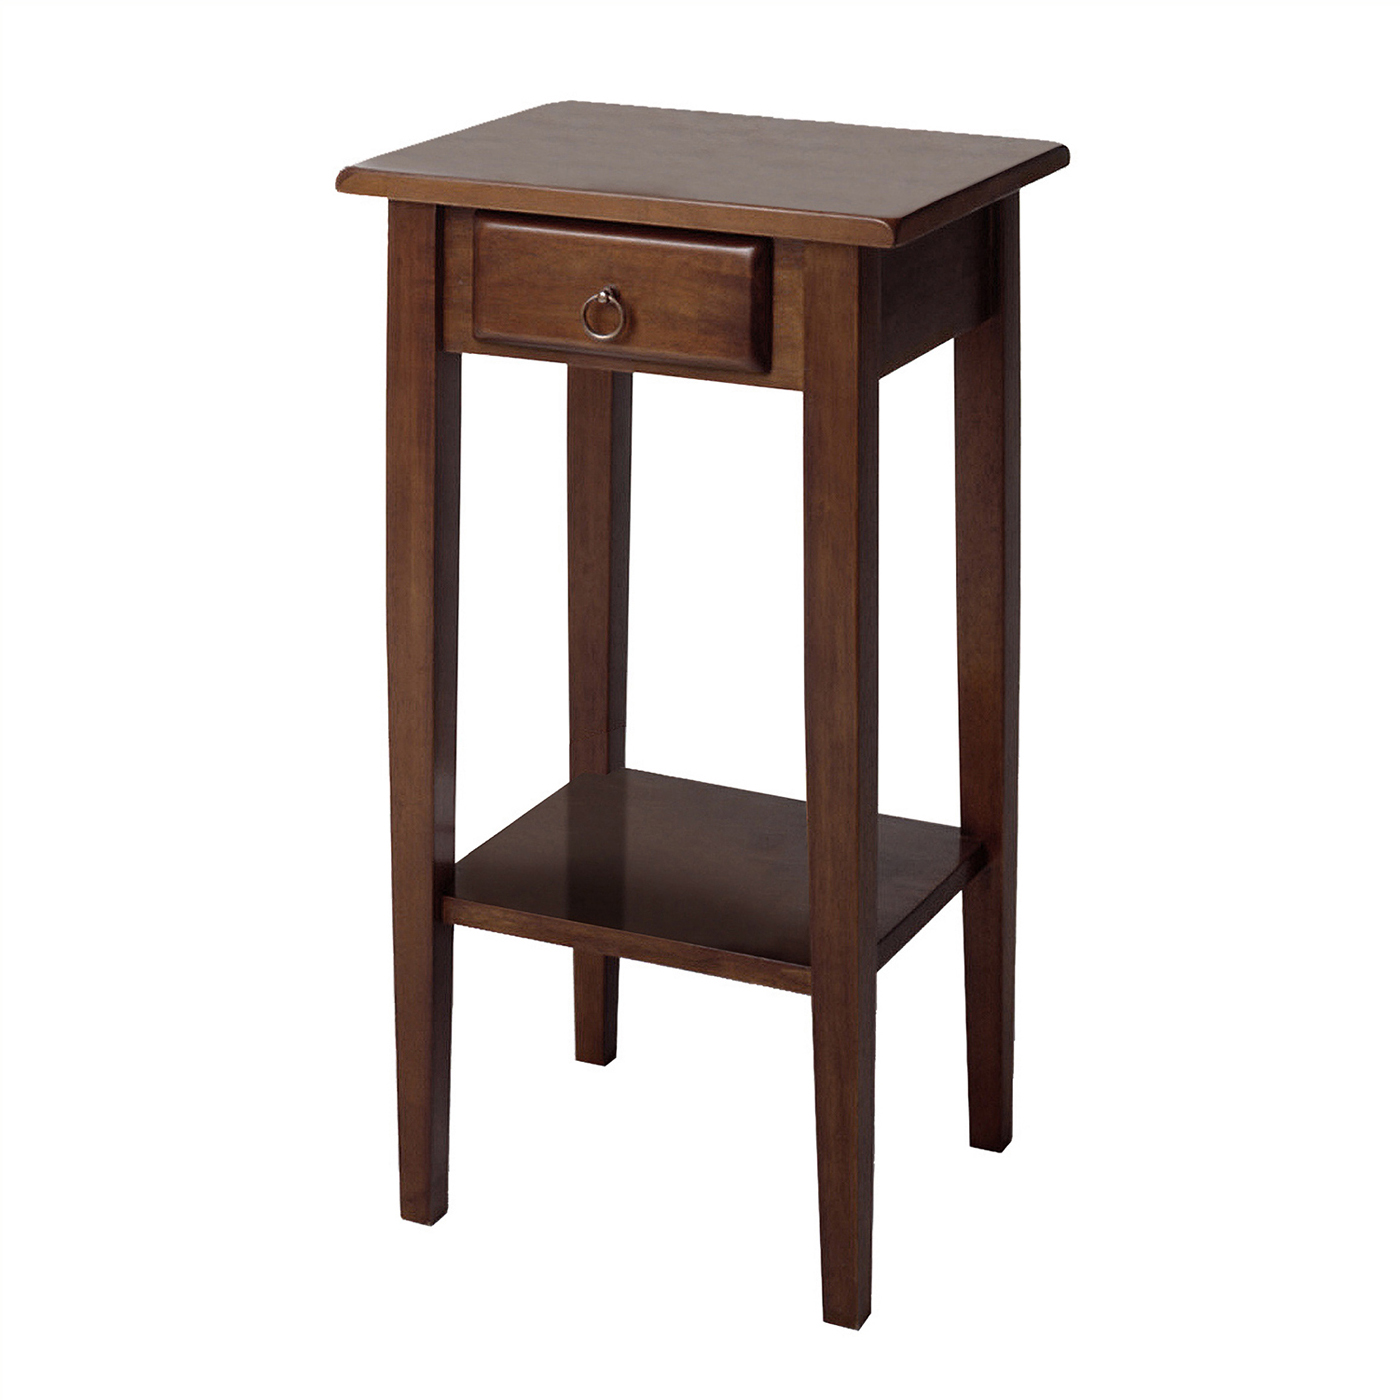 winsome wood regalia plant stand accent table with drawer new telephone view larger style kitchen and chairs long cabinet coffee wicker storage lawn furniture metal dining room